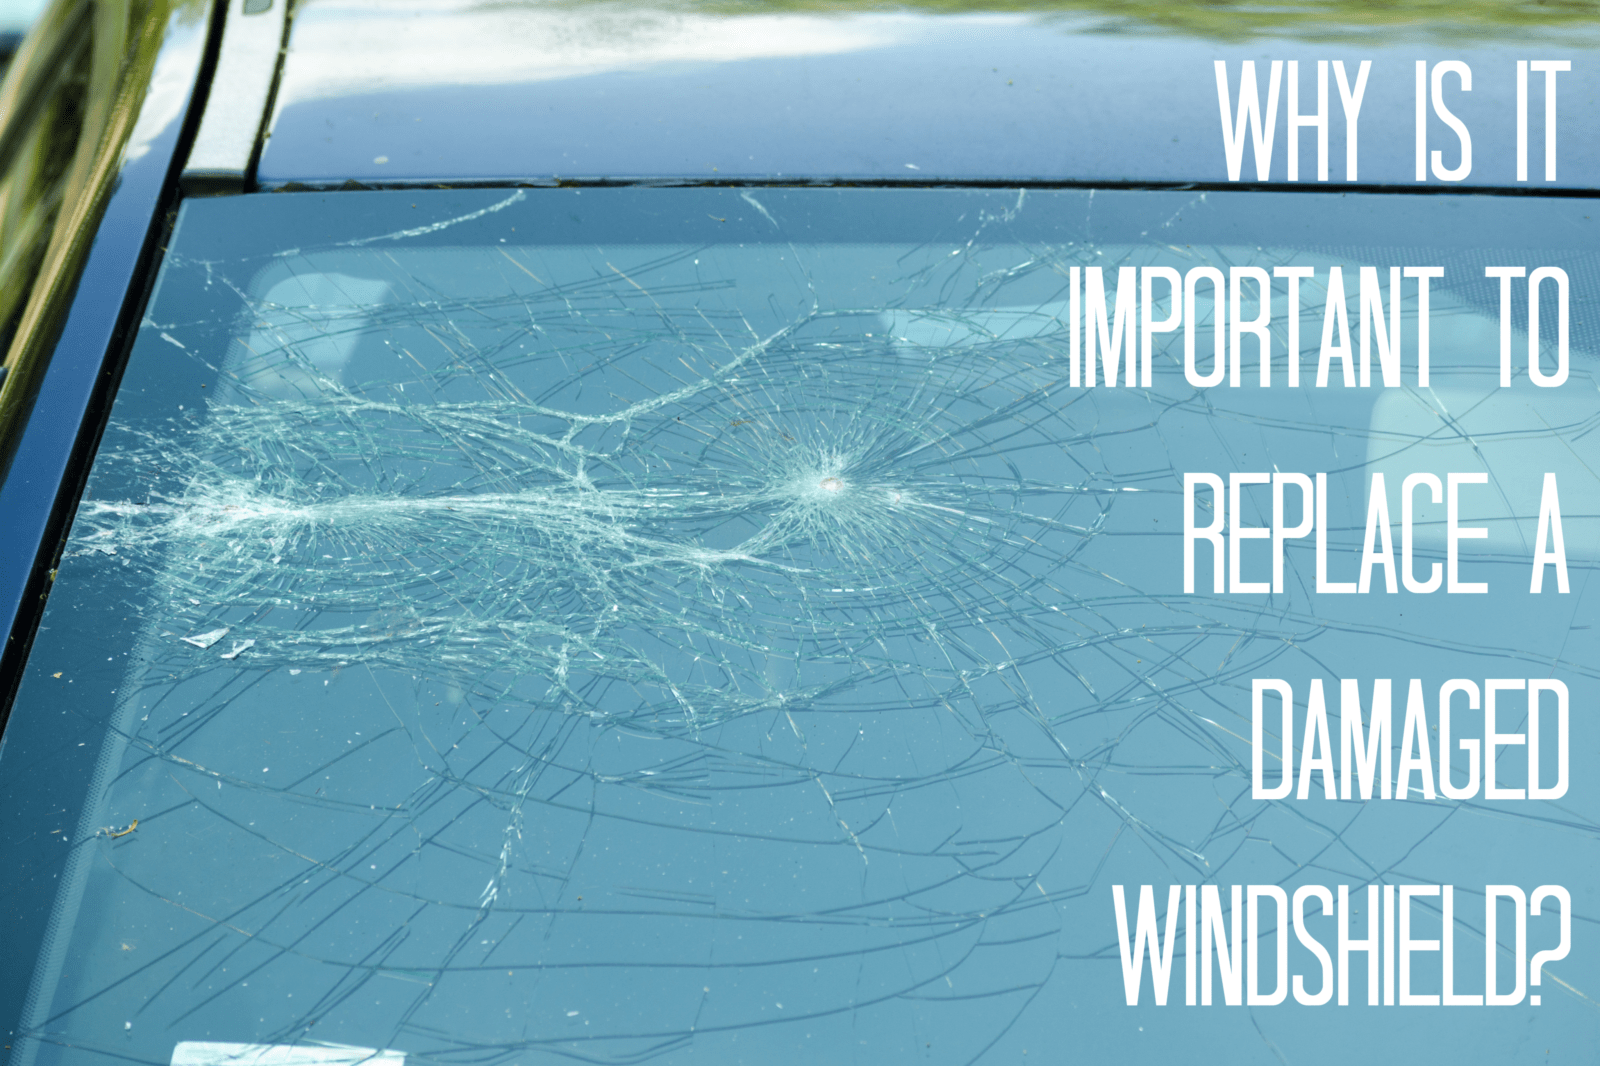 why is it important to replace a damaged windshield?